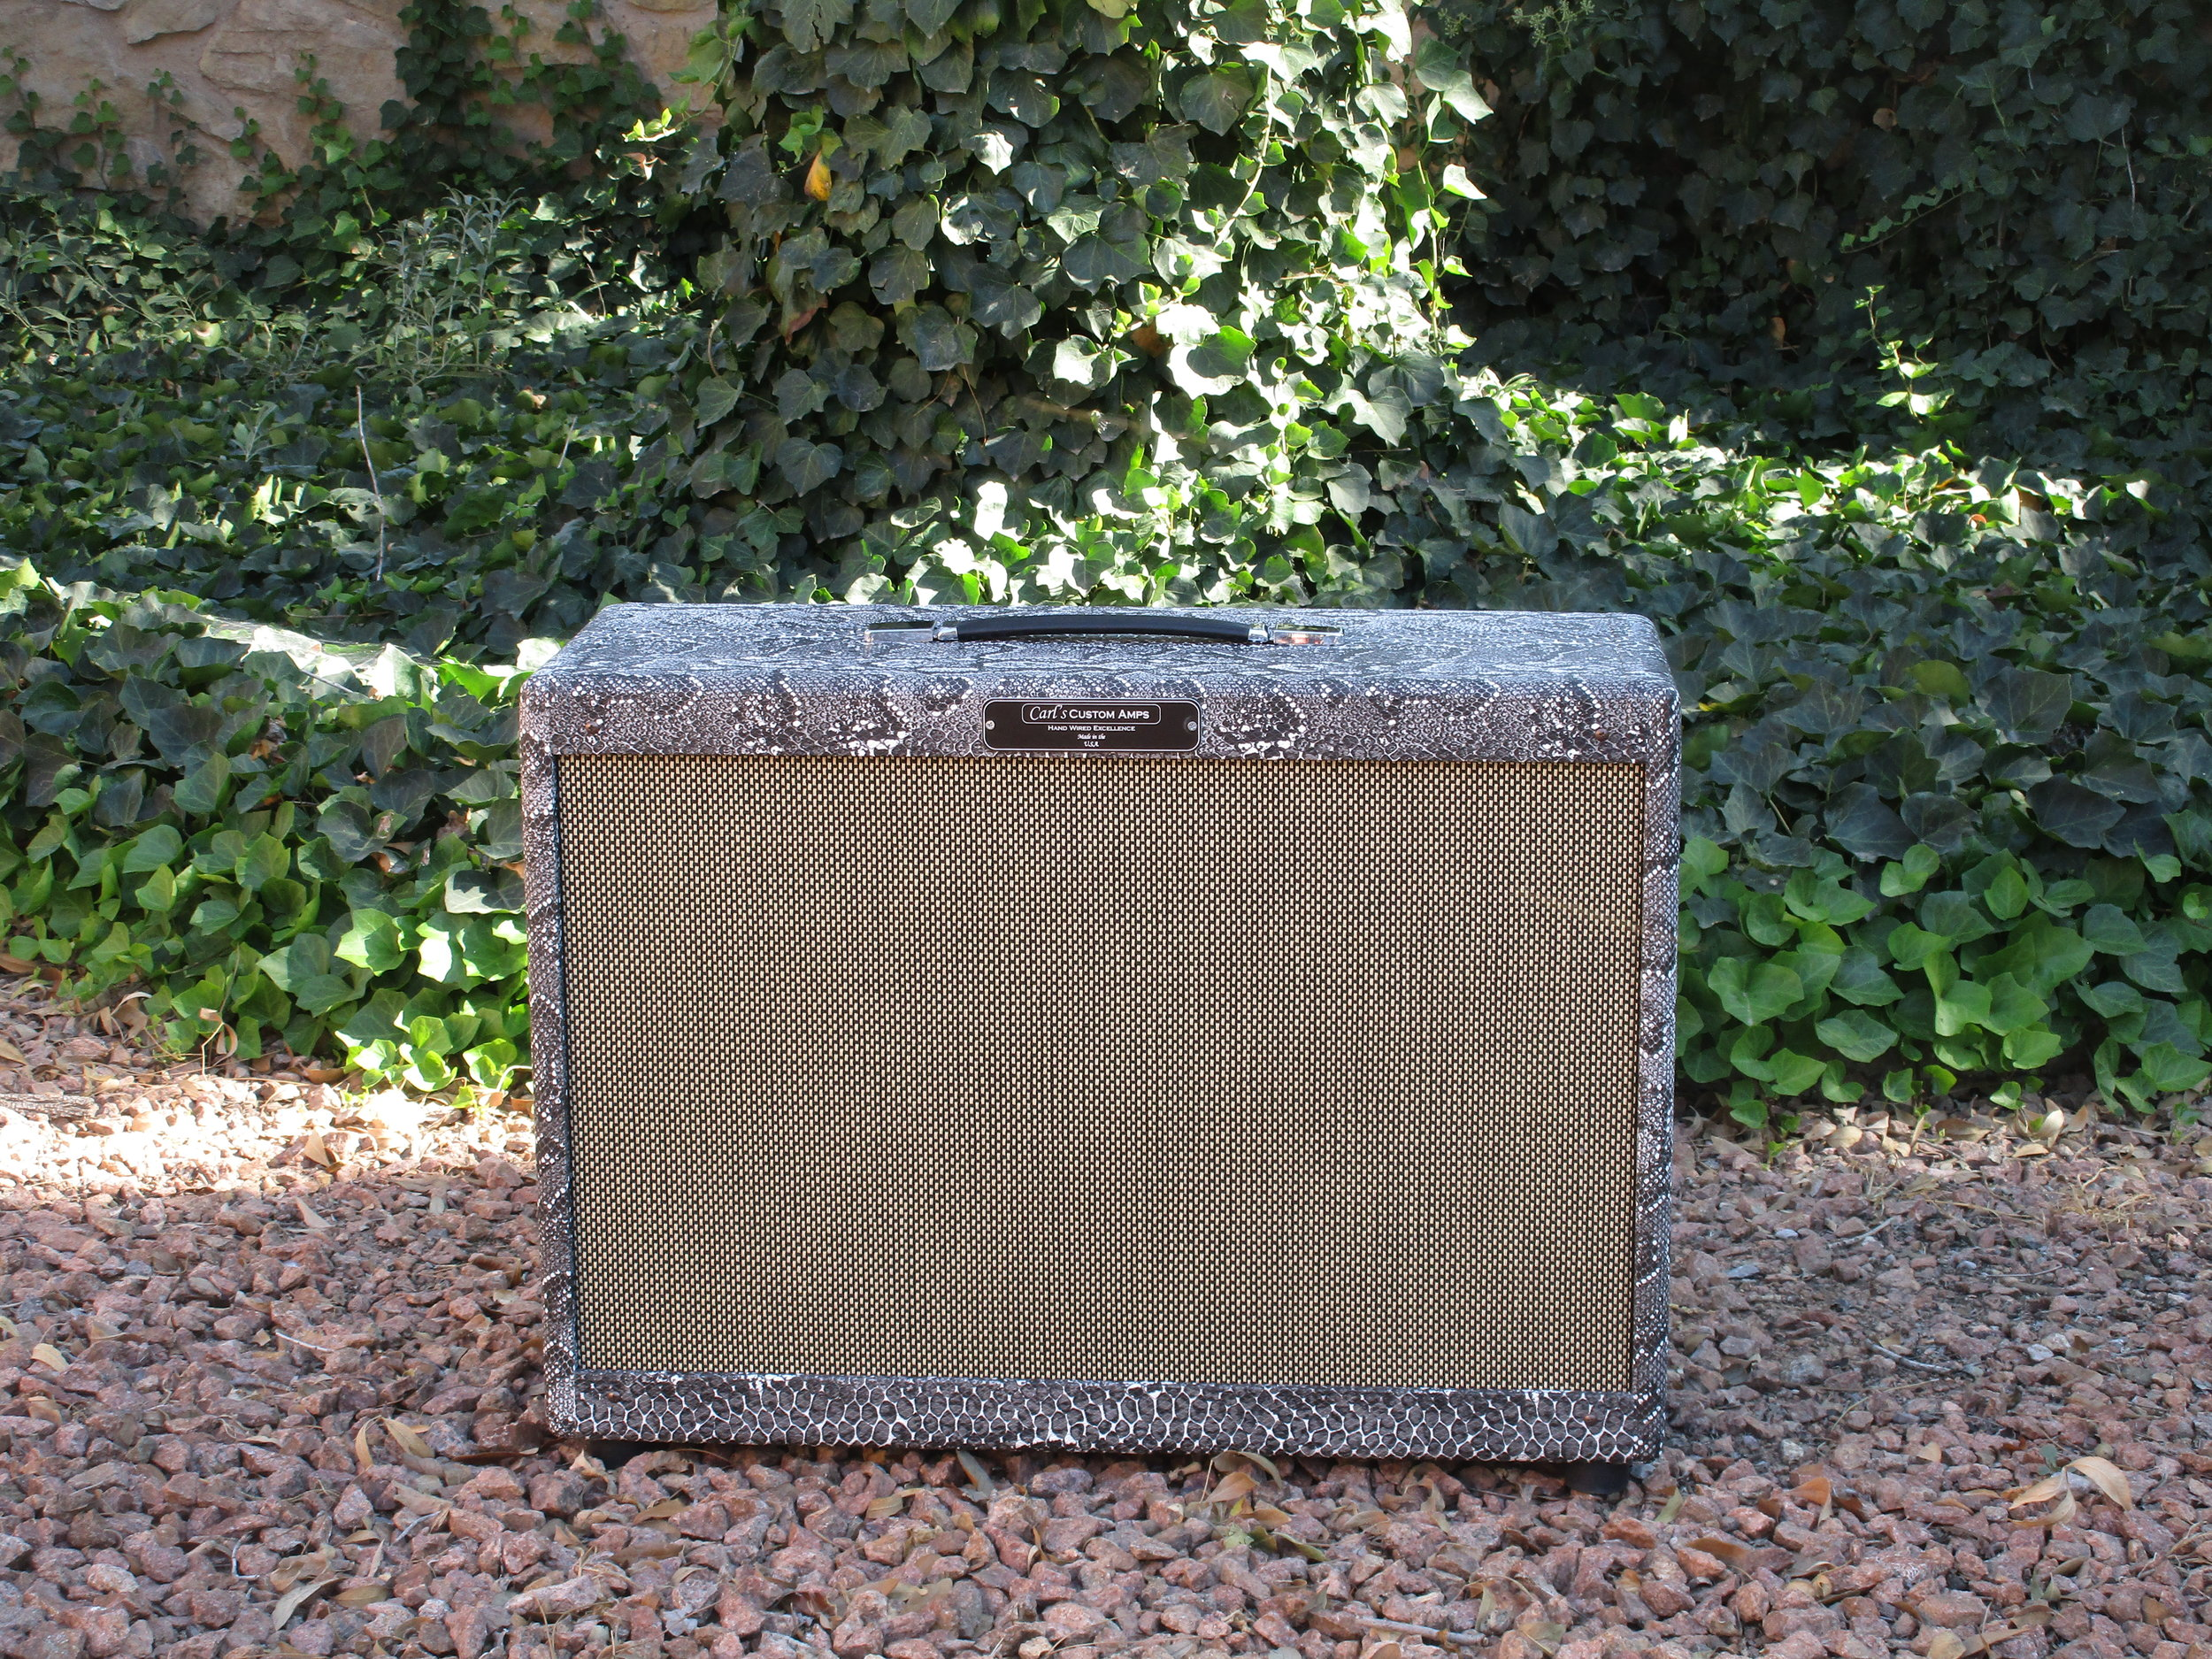 Neatcustom 2x12 Cab with Weber Blue Dog and Silver Bell speaker. The cab is pine with floating baffle lots of great character! Cab like this run about $645.